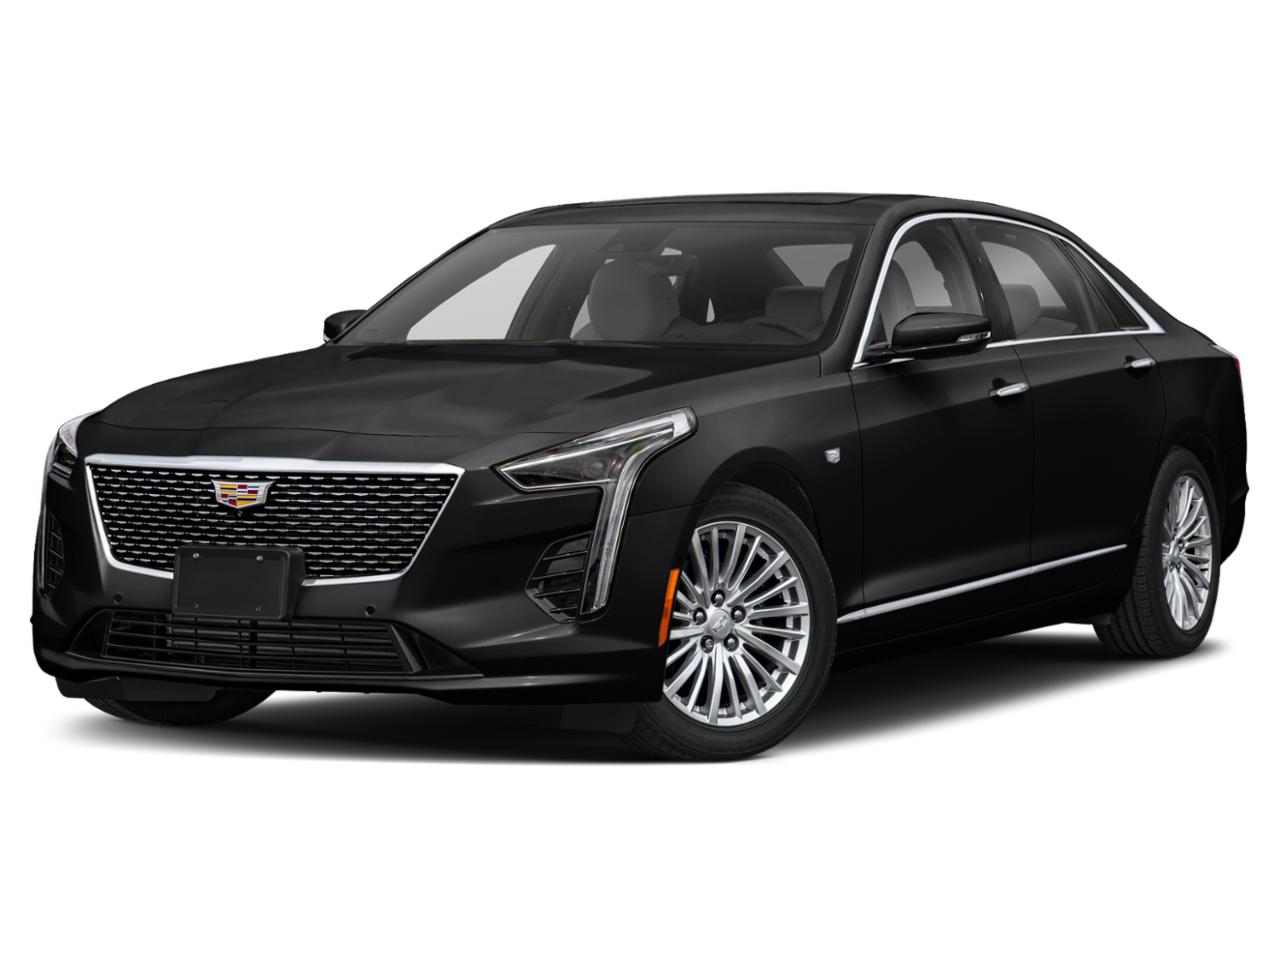 2020 Cadillac CT6 Vehicle Photo in Libertyville, IL 60048